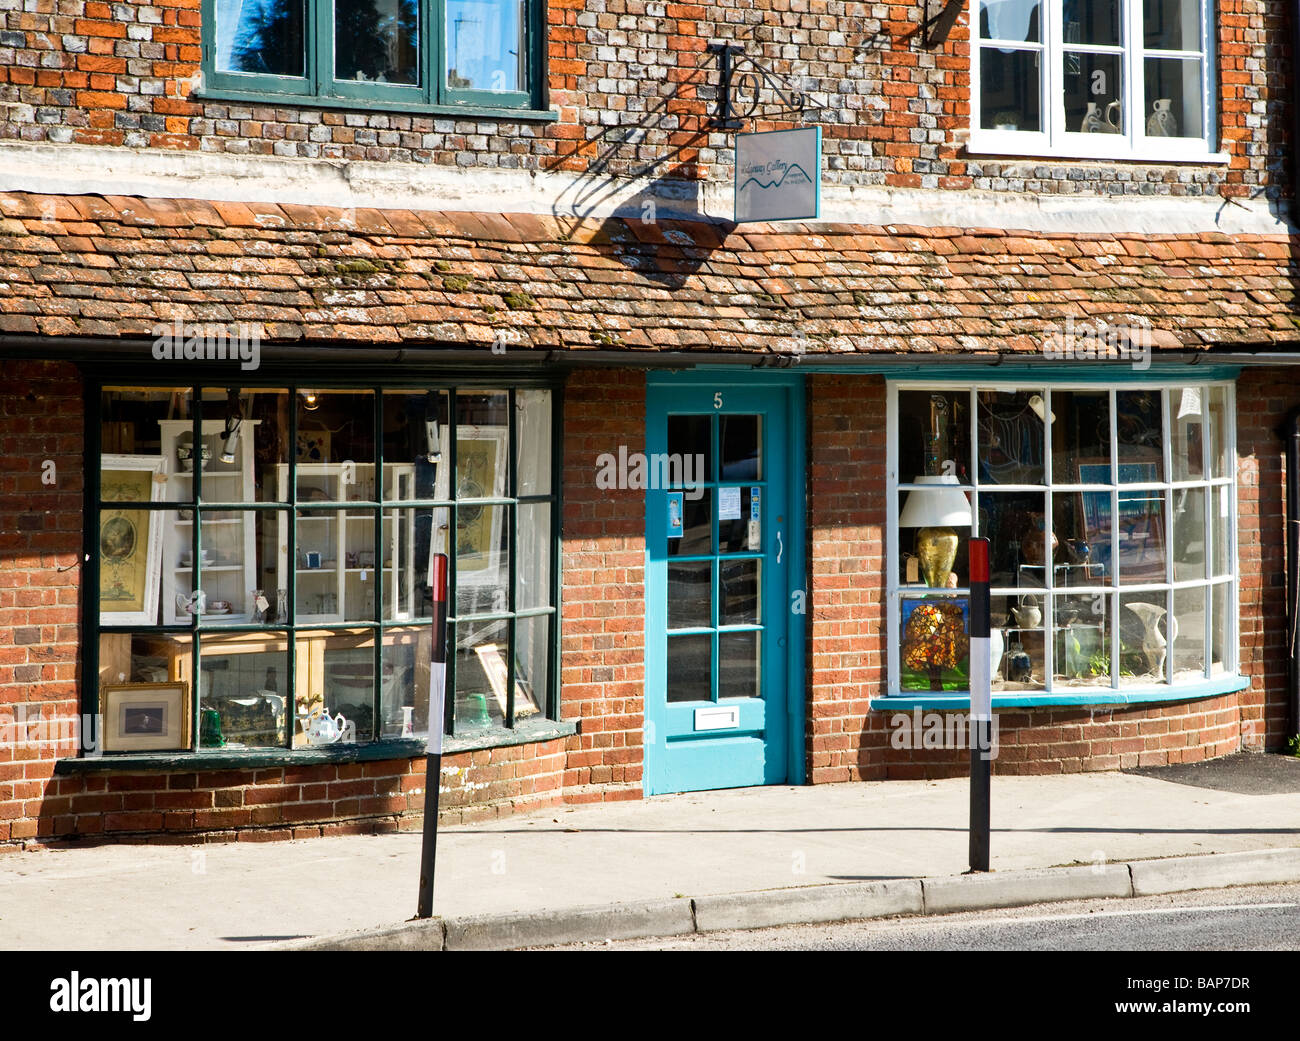 A quaint old bay fronted art and craft shop or gallery in the typical English market town of Marlborough Wiltshire - Stock Image